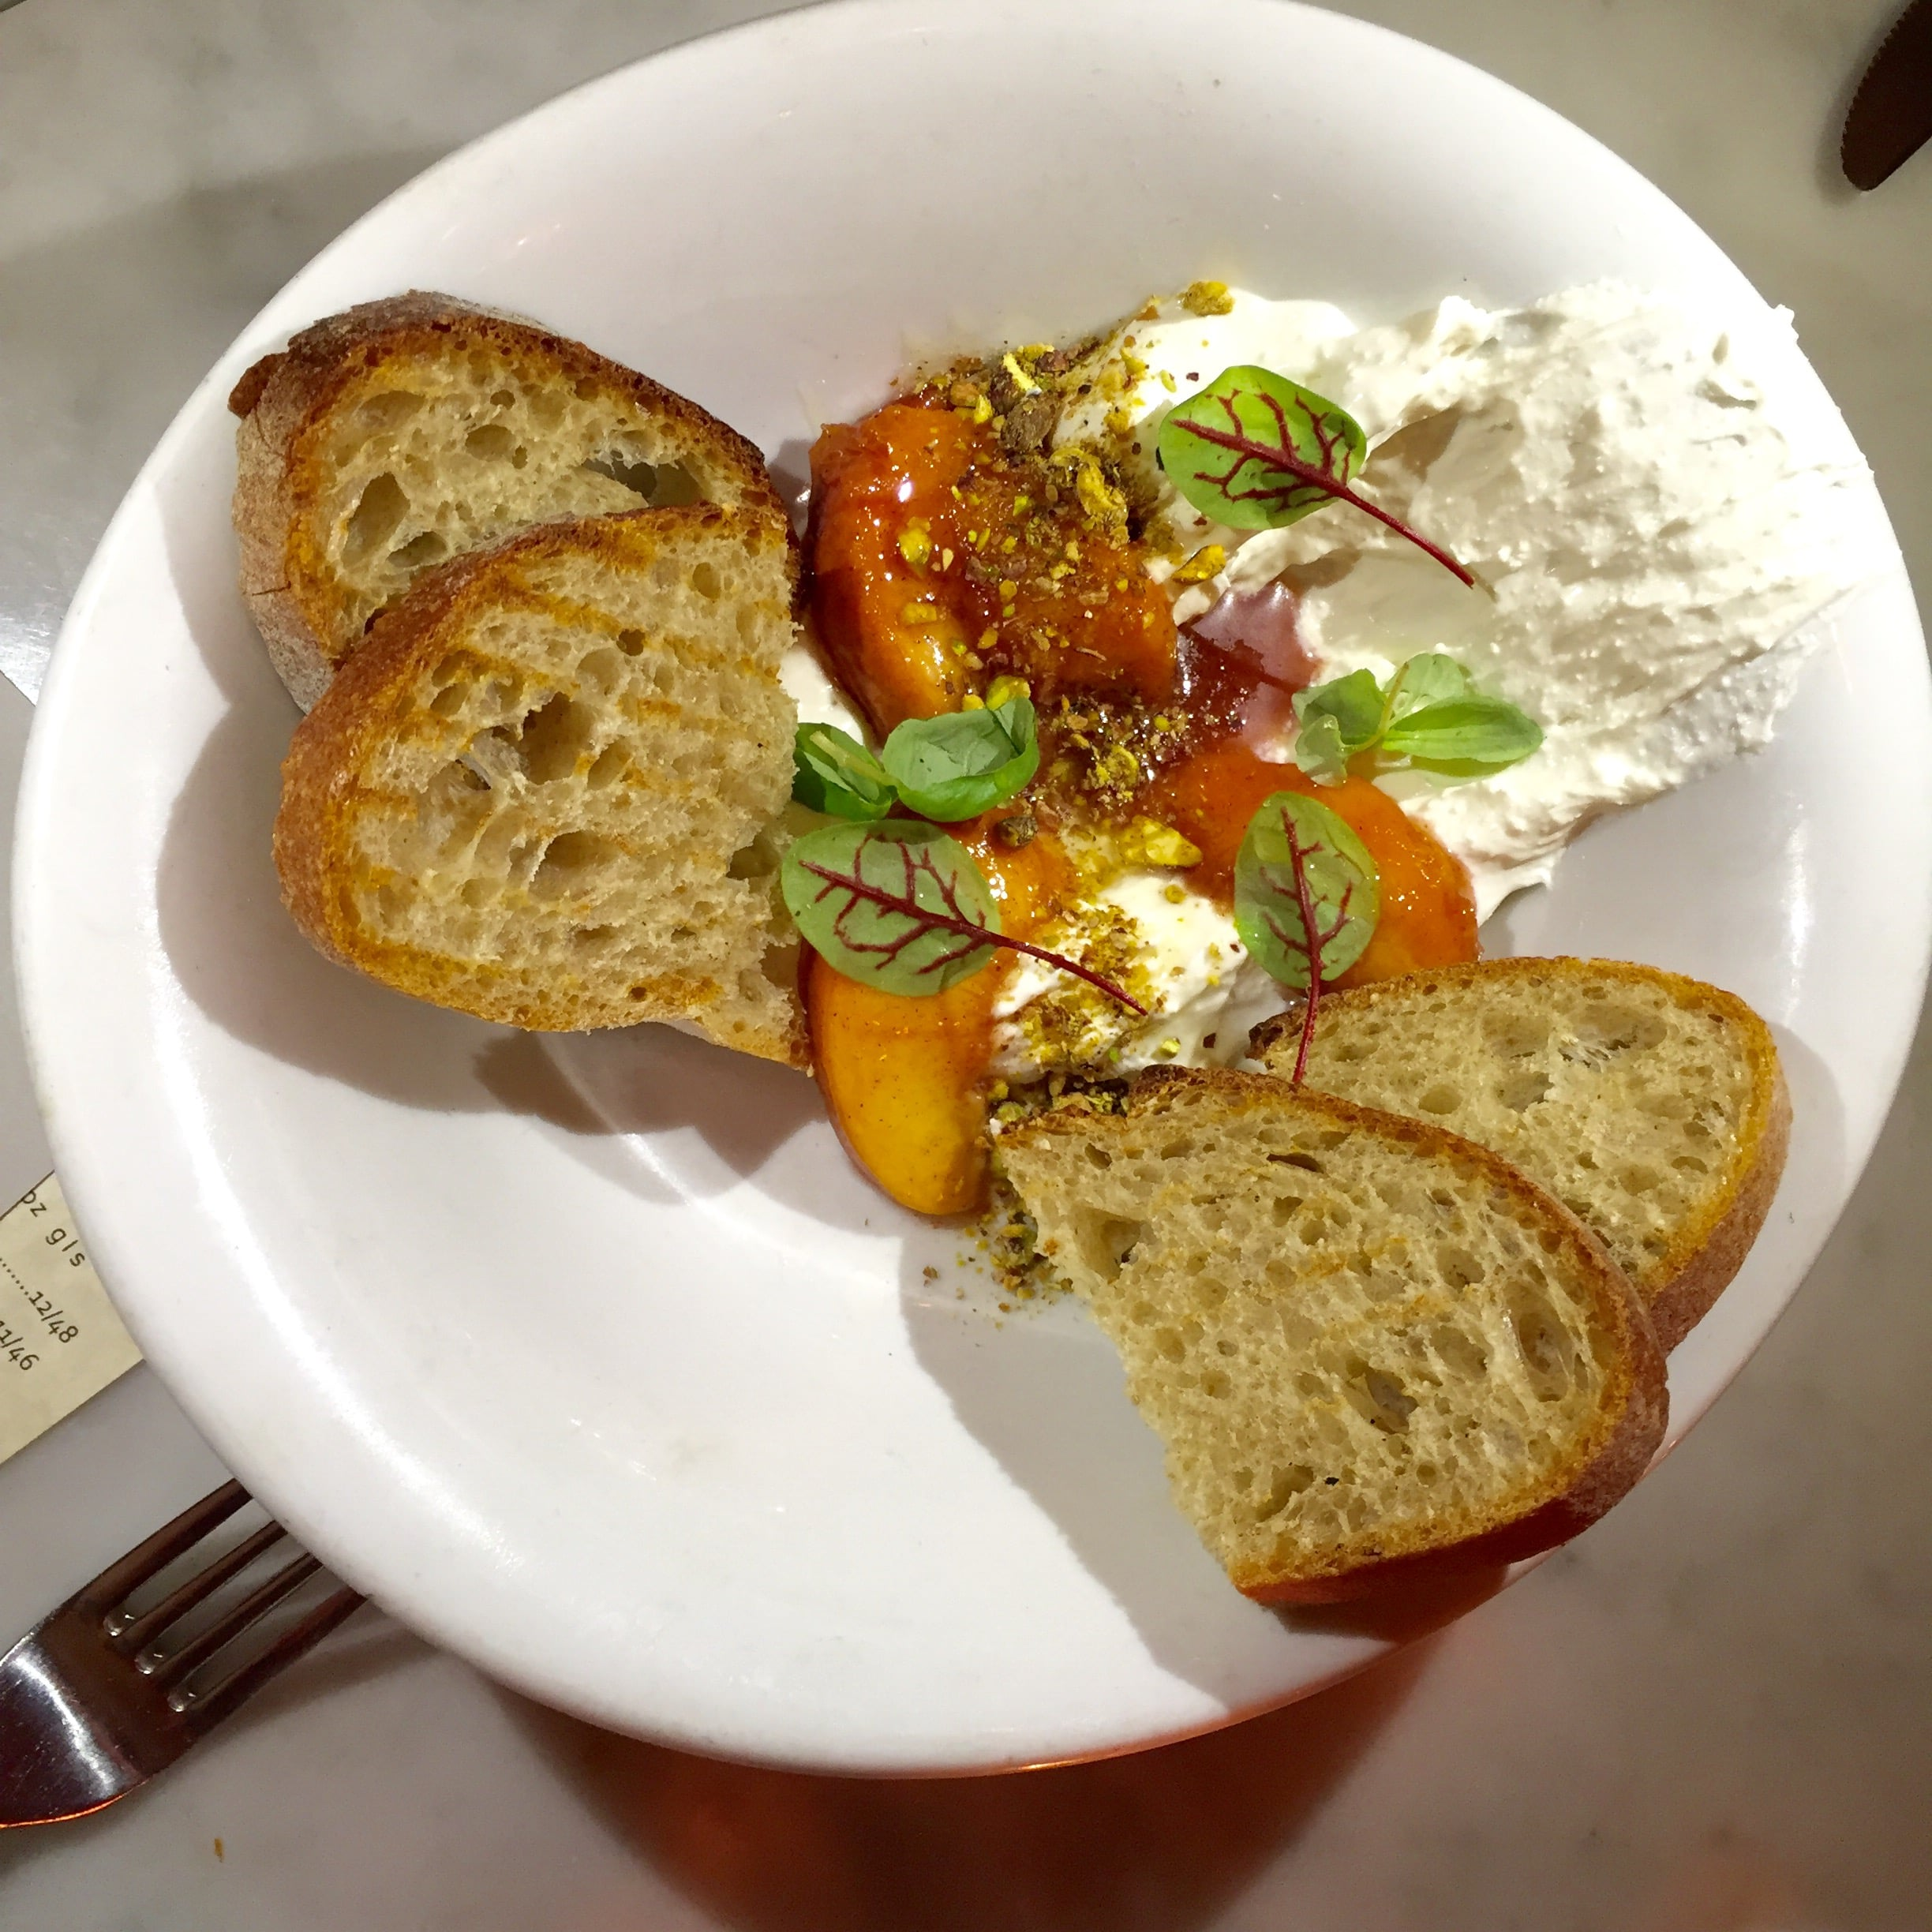 Whipped house made ricotta with spice roasted nectarines,pistachios and grilled sour dough.